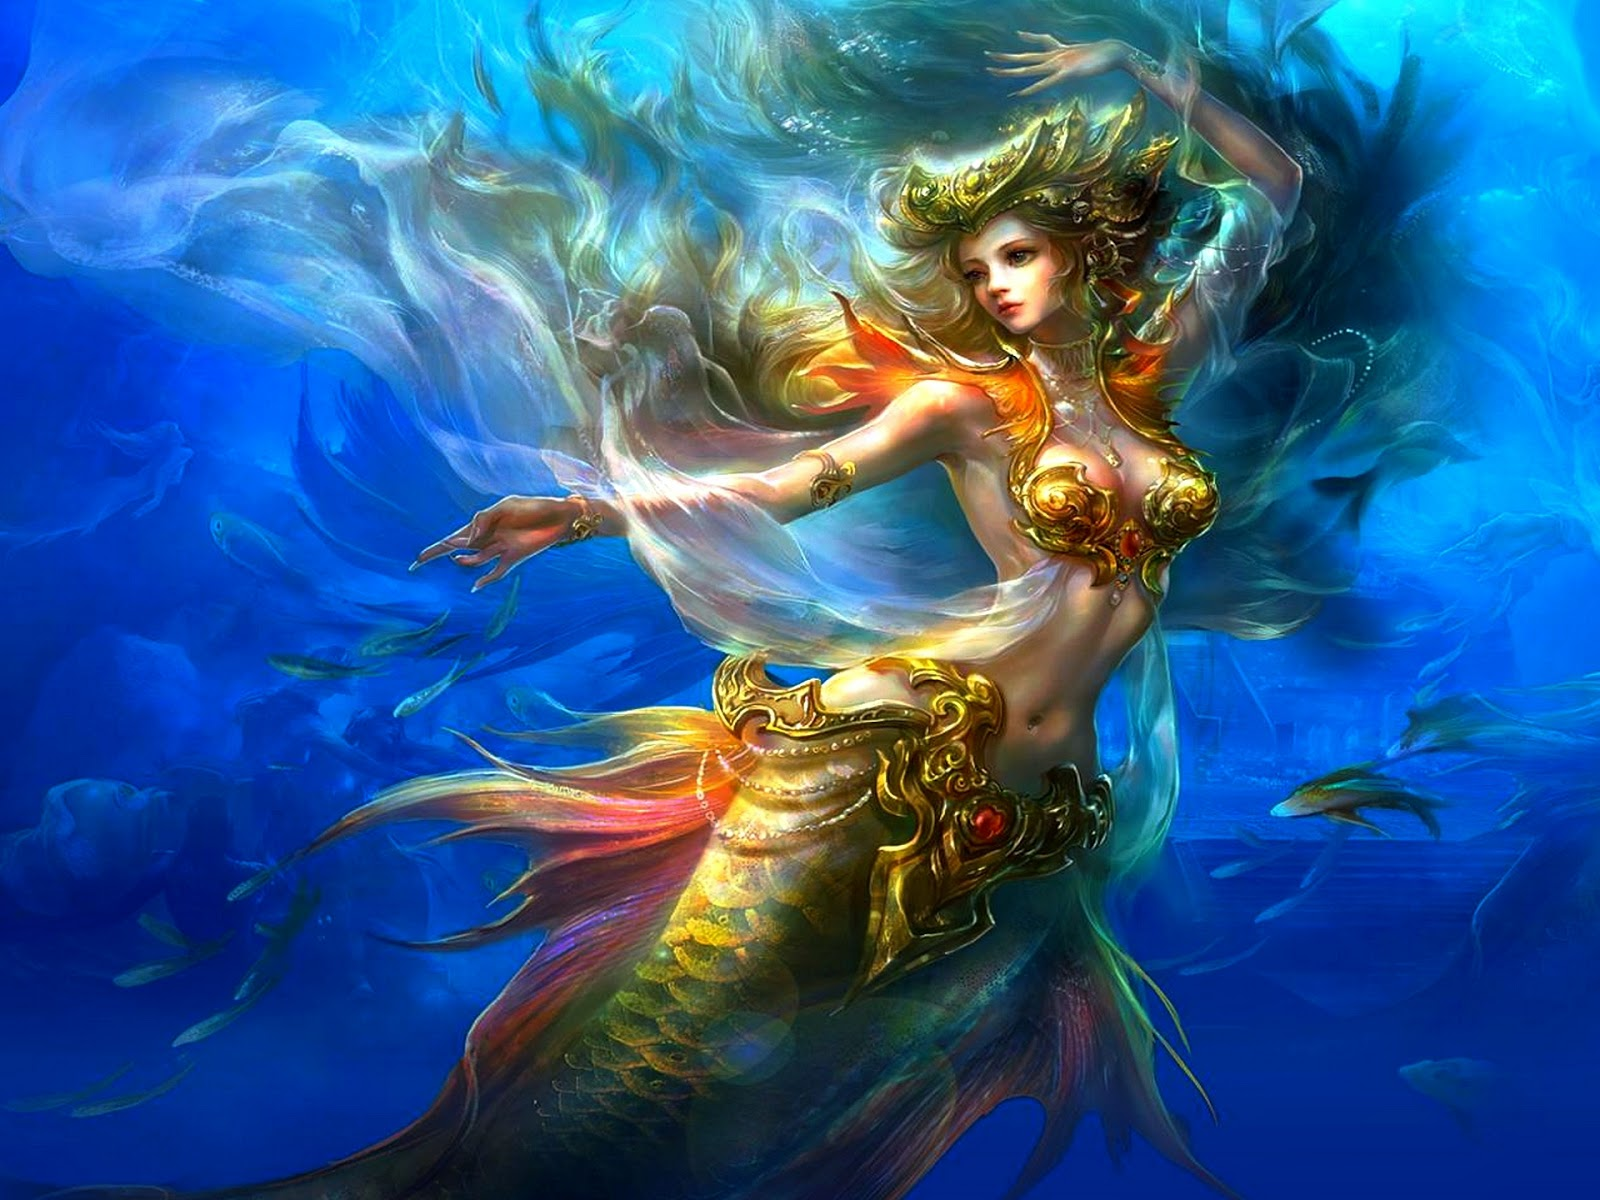 half-fish-girl-fantasy-pictures-for-mobile.jpg